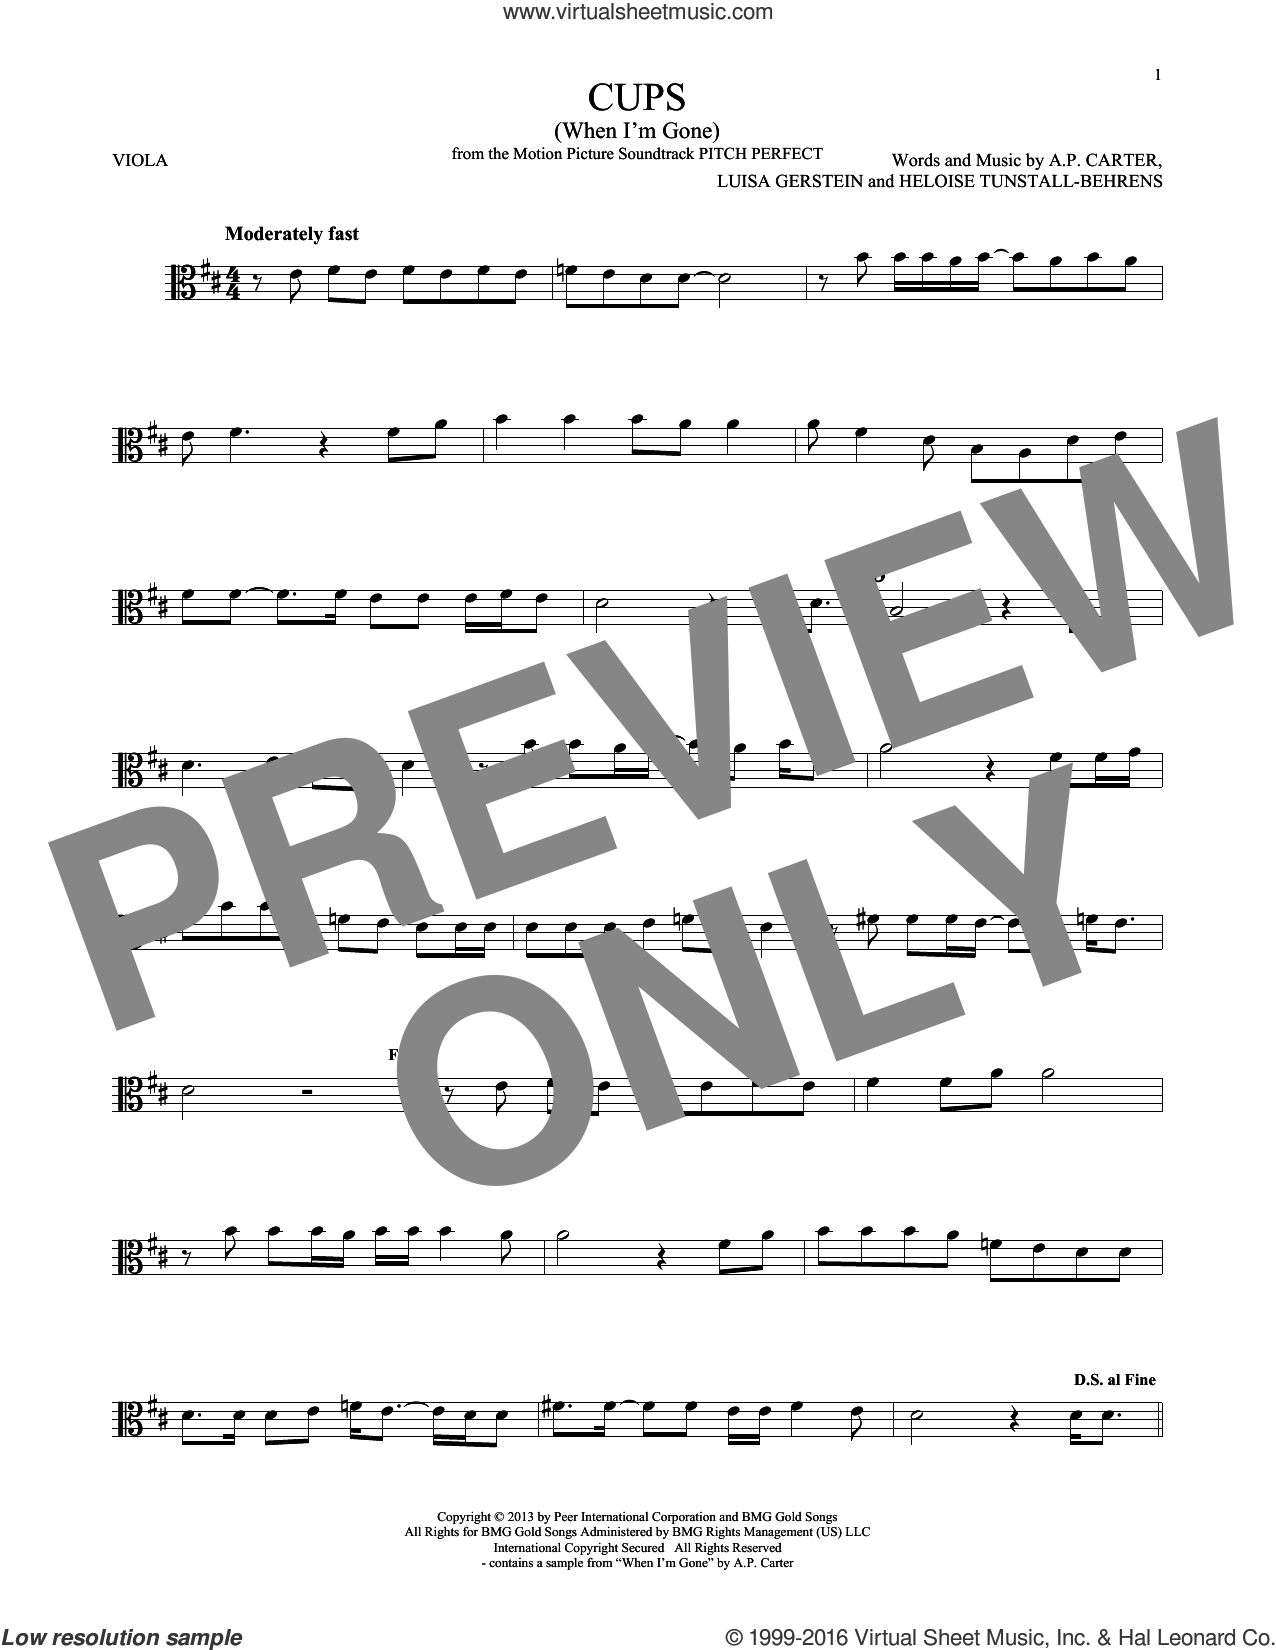 Cups (When I'm Gone) sheet music for viola solo by Anna Kendrick, A.P. Carter, Heloise Tunstall-Behrens and Luisa Gerstein, intermediate skill level